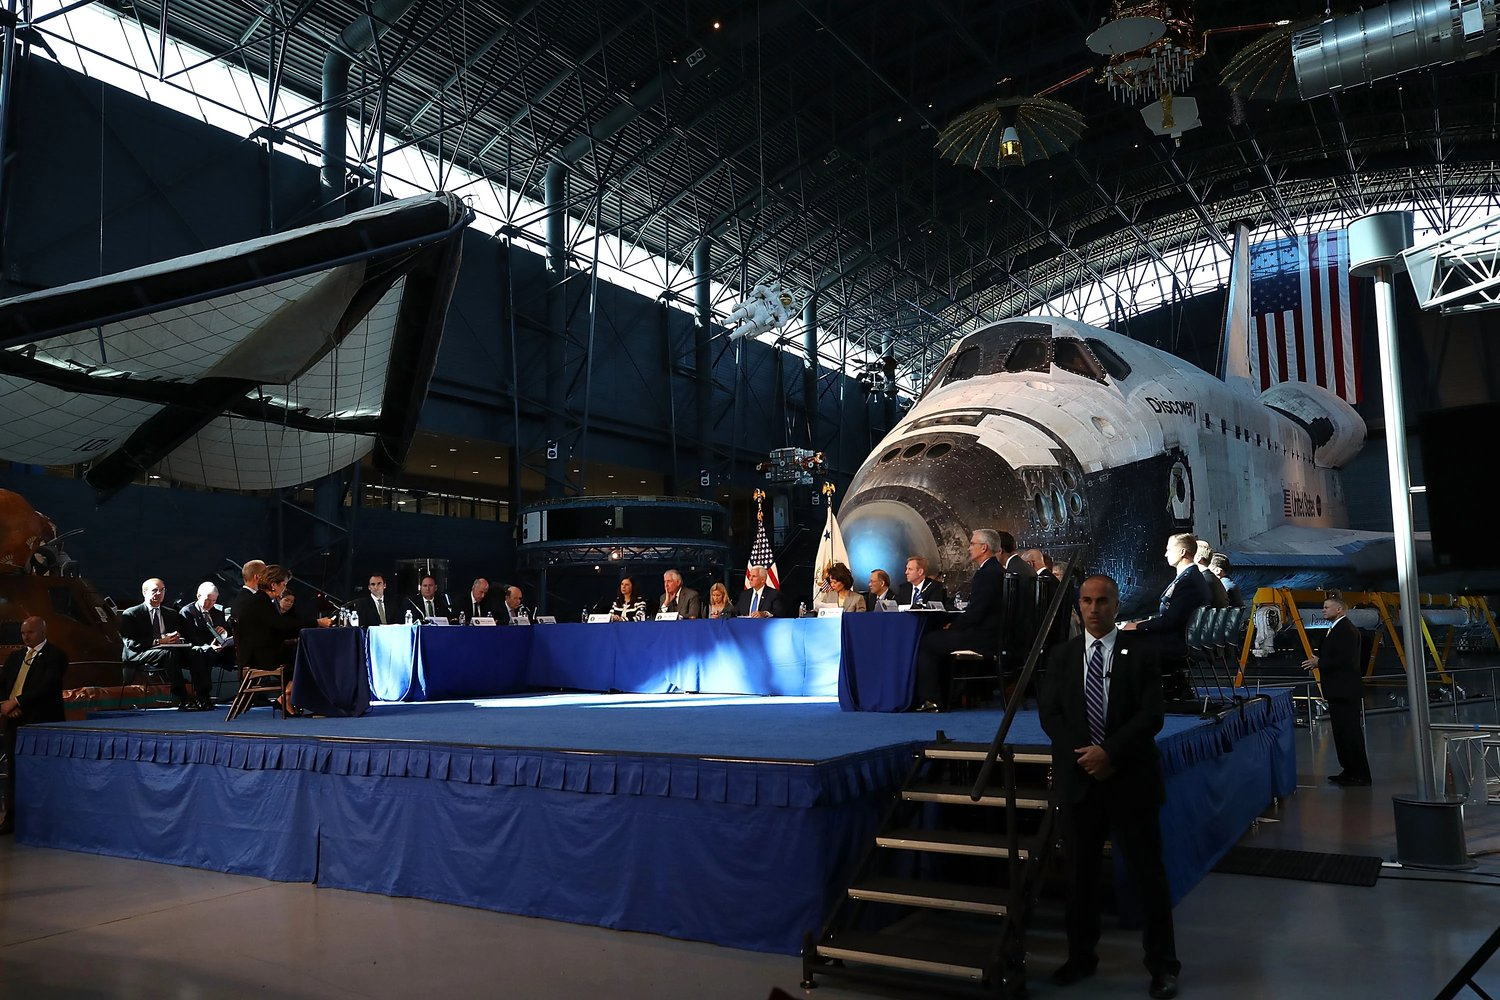 The meeting was held at the National Museum of Aeronautics and Astronautics